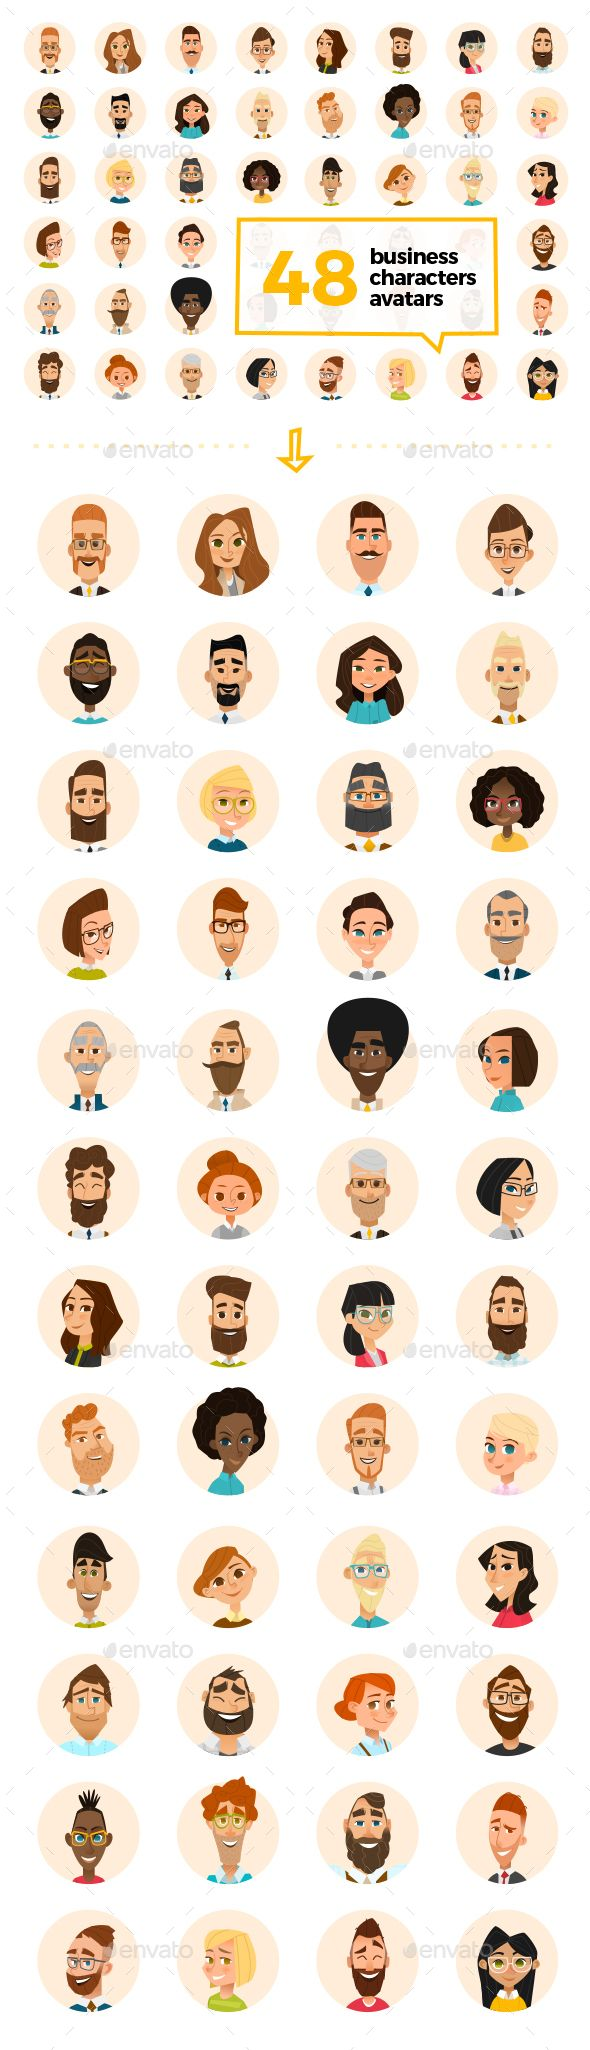 48 Business Cartoon Avatars Vector EPS, AI Illustrator, PSD. Download here: https://graphicriver.net/item/48-business-cartoon-avatars/15688678?ref=ksioks